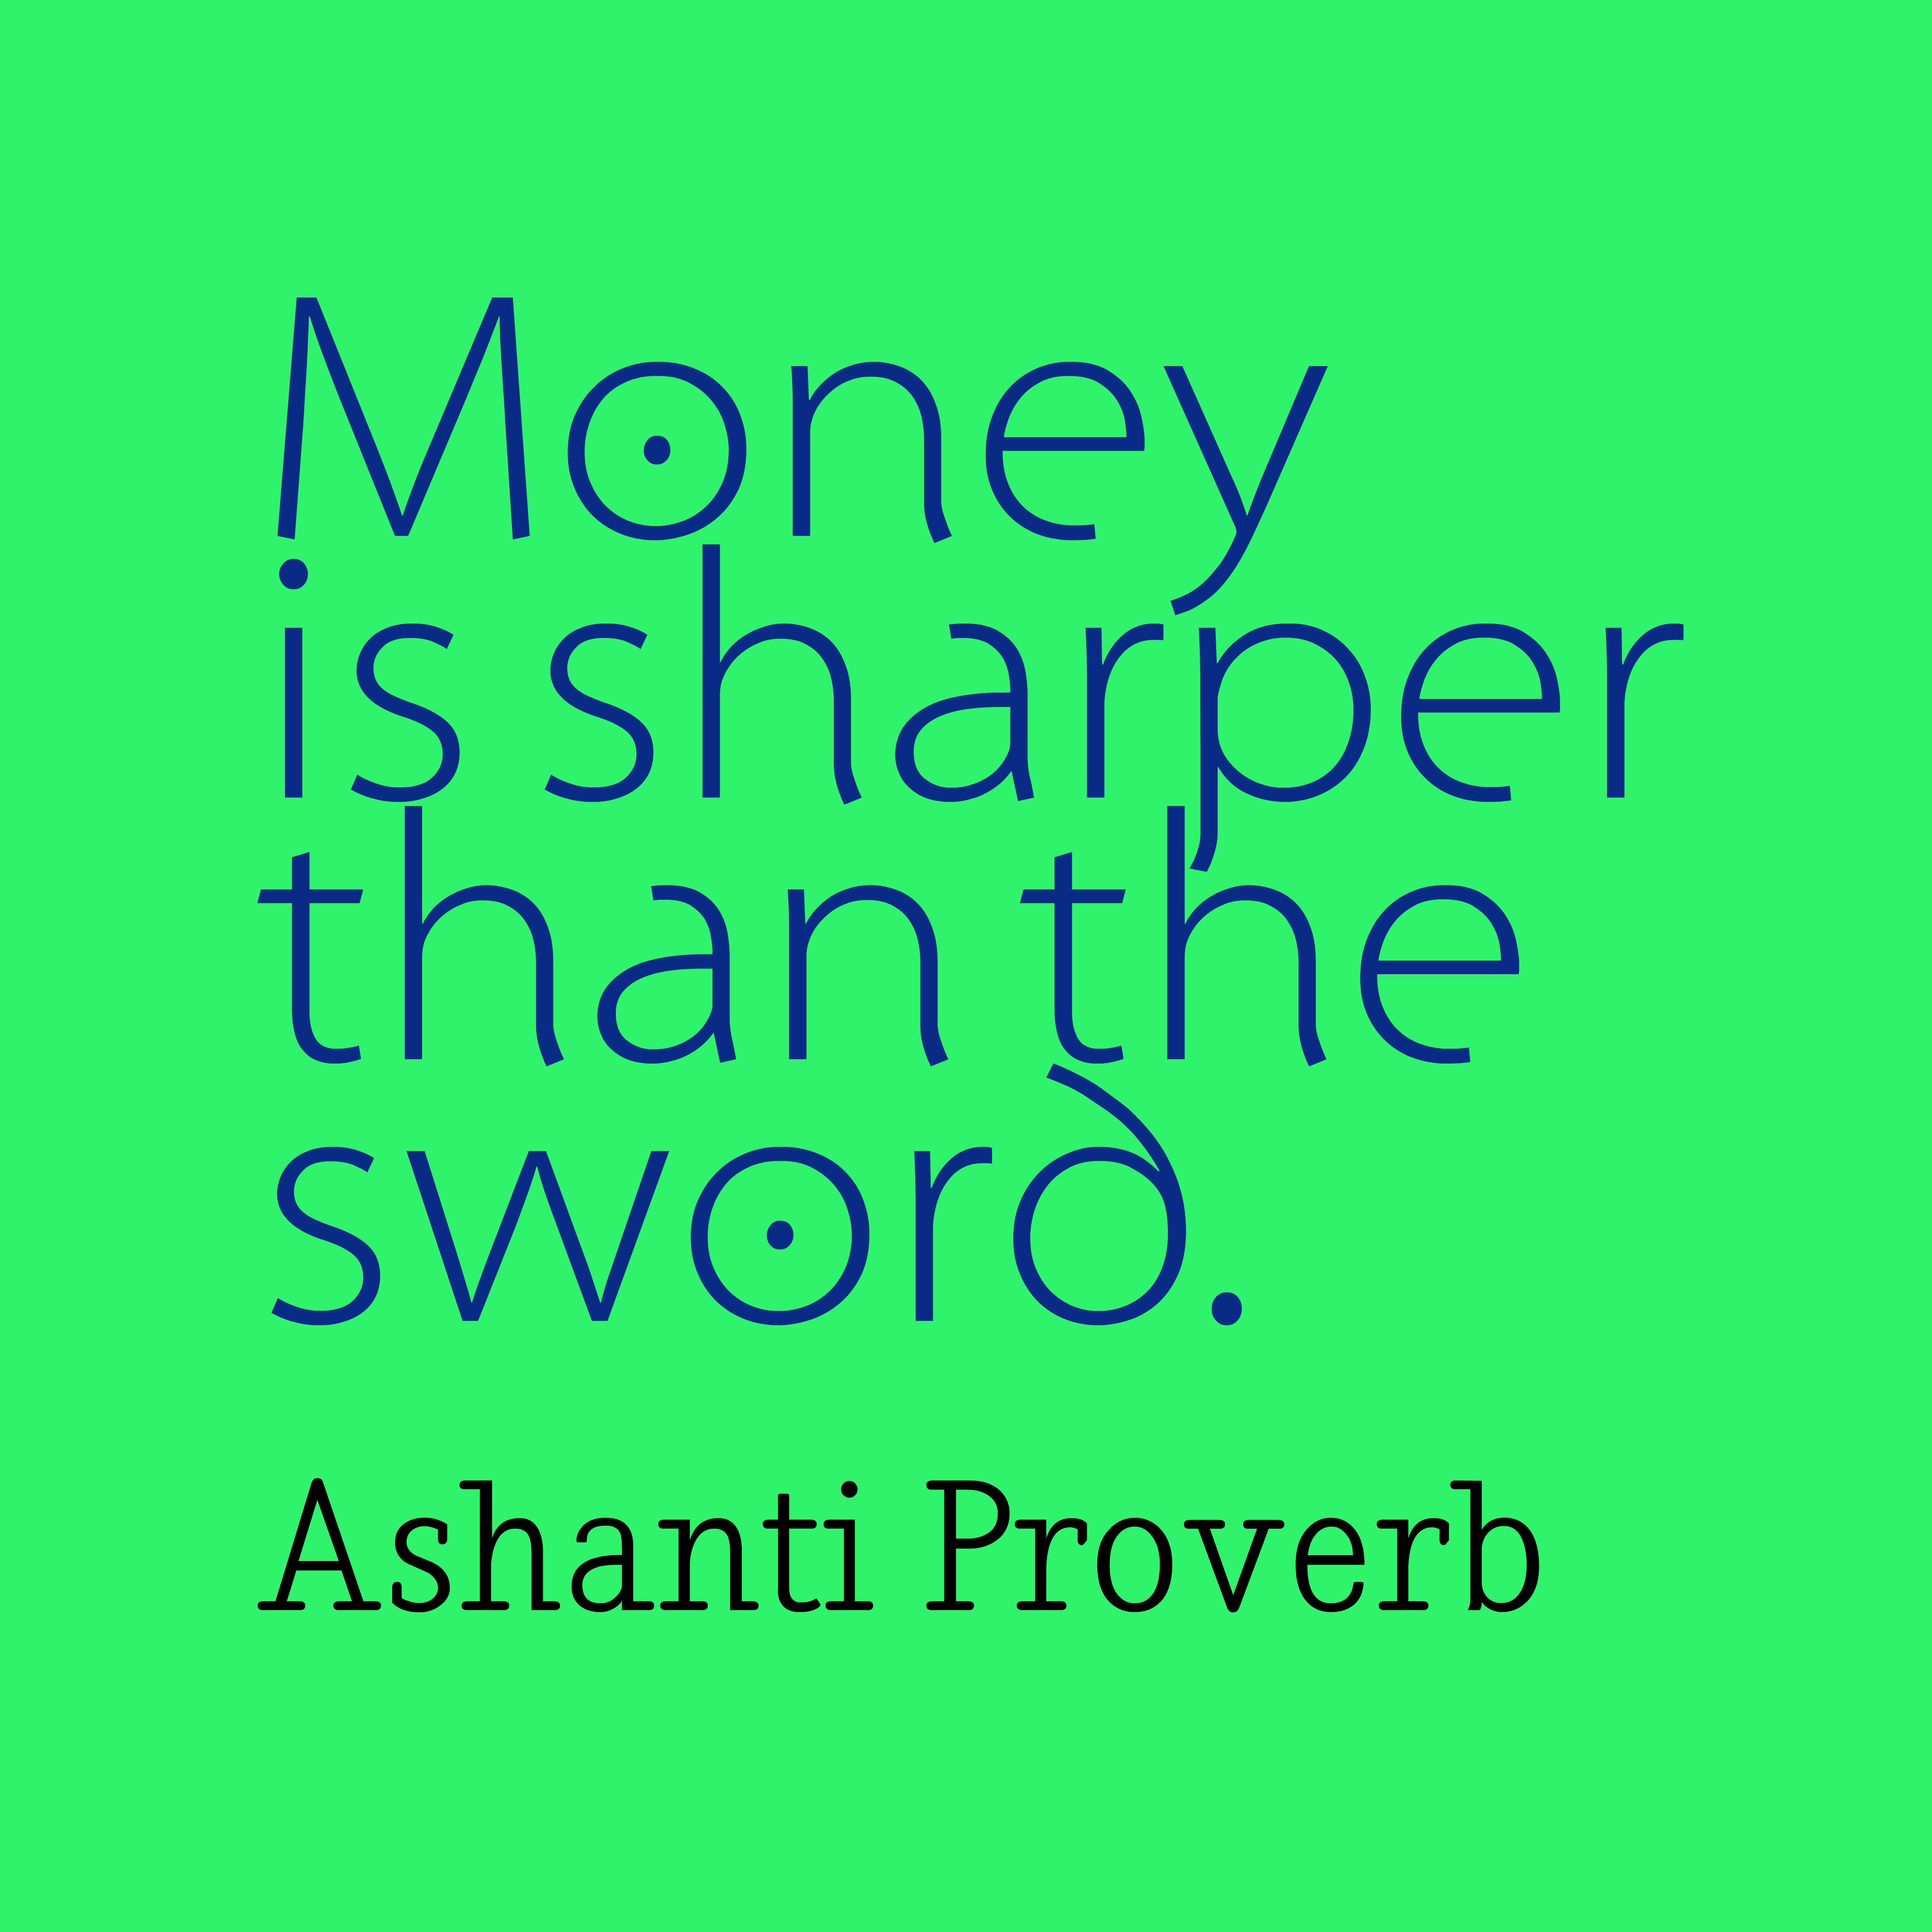 Quotes image of Money is sharper than the sword.